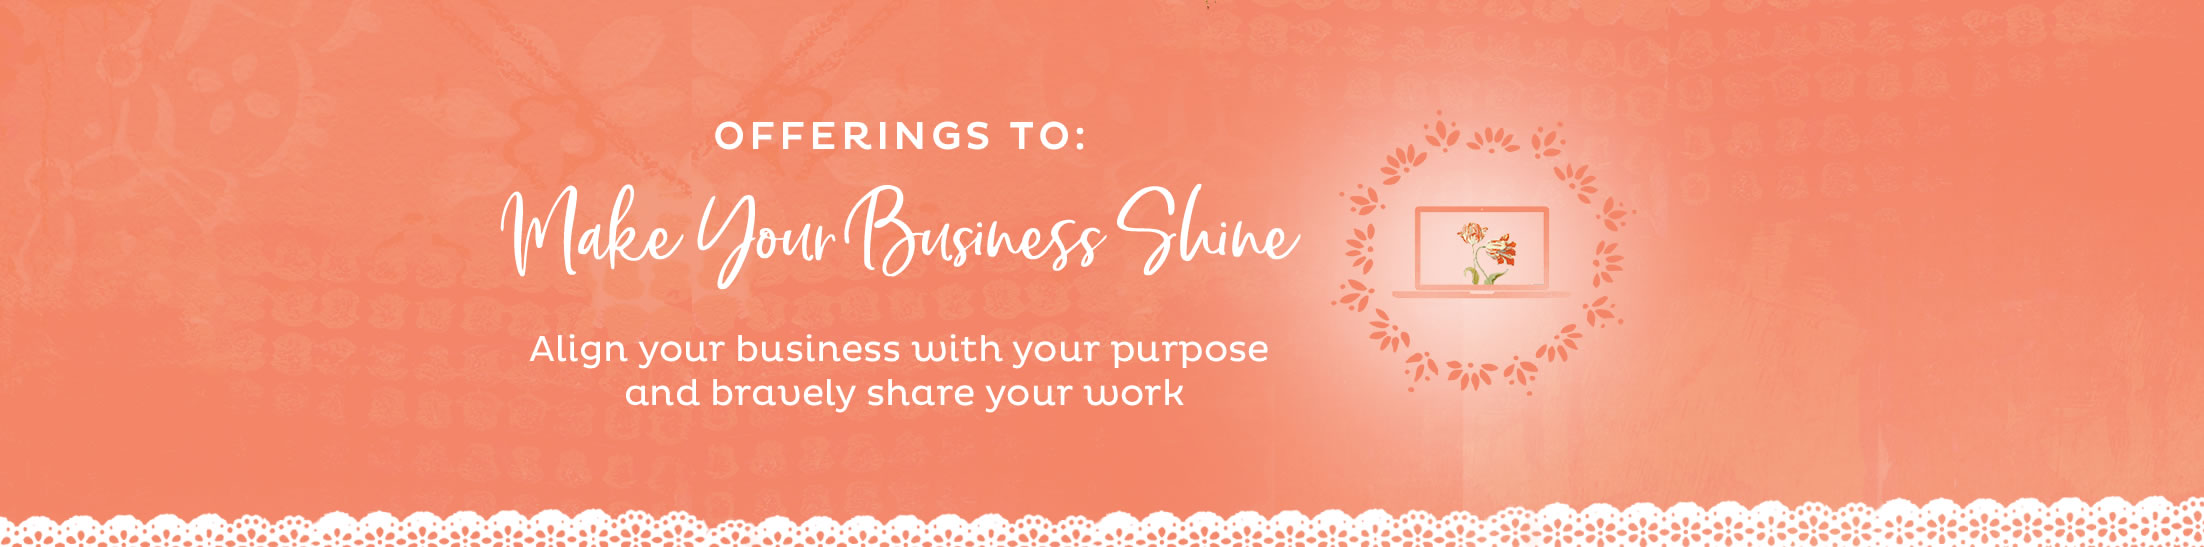 eCourses to Make Your Business Shine